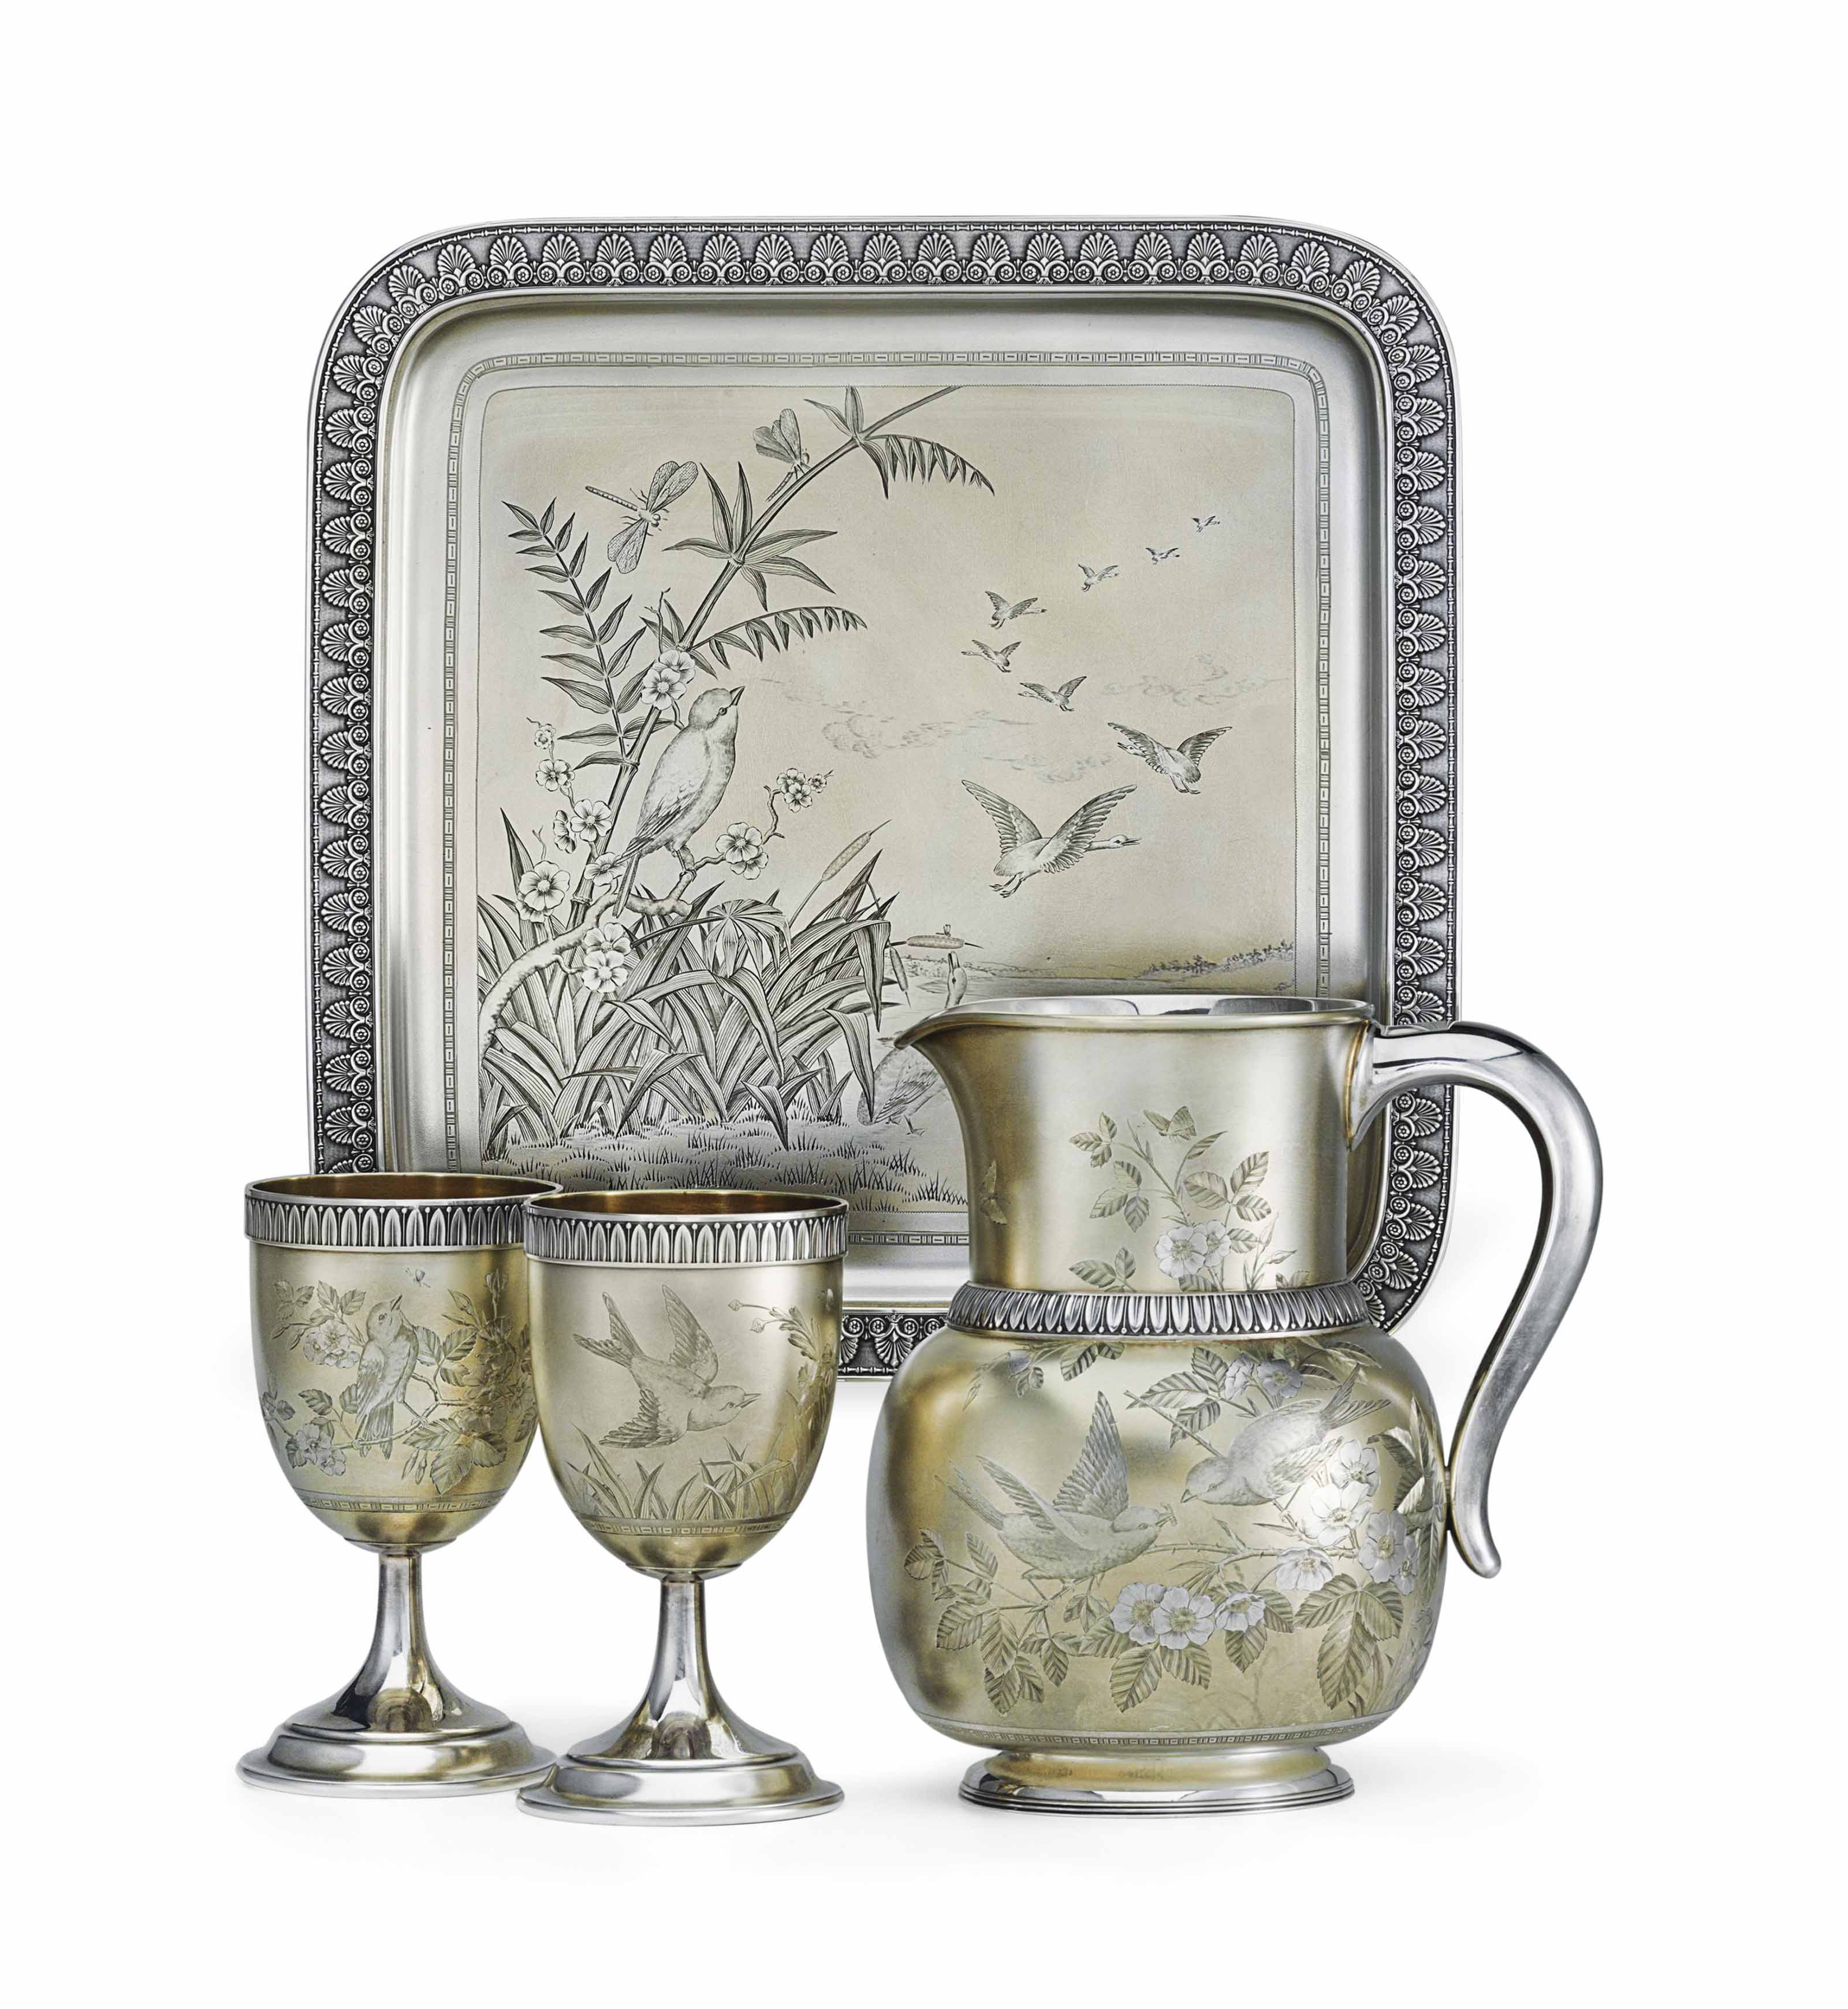 A FINE AMERICAN PARCEL-GILT AND ENGRAVED SILVER WATER SET